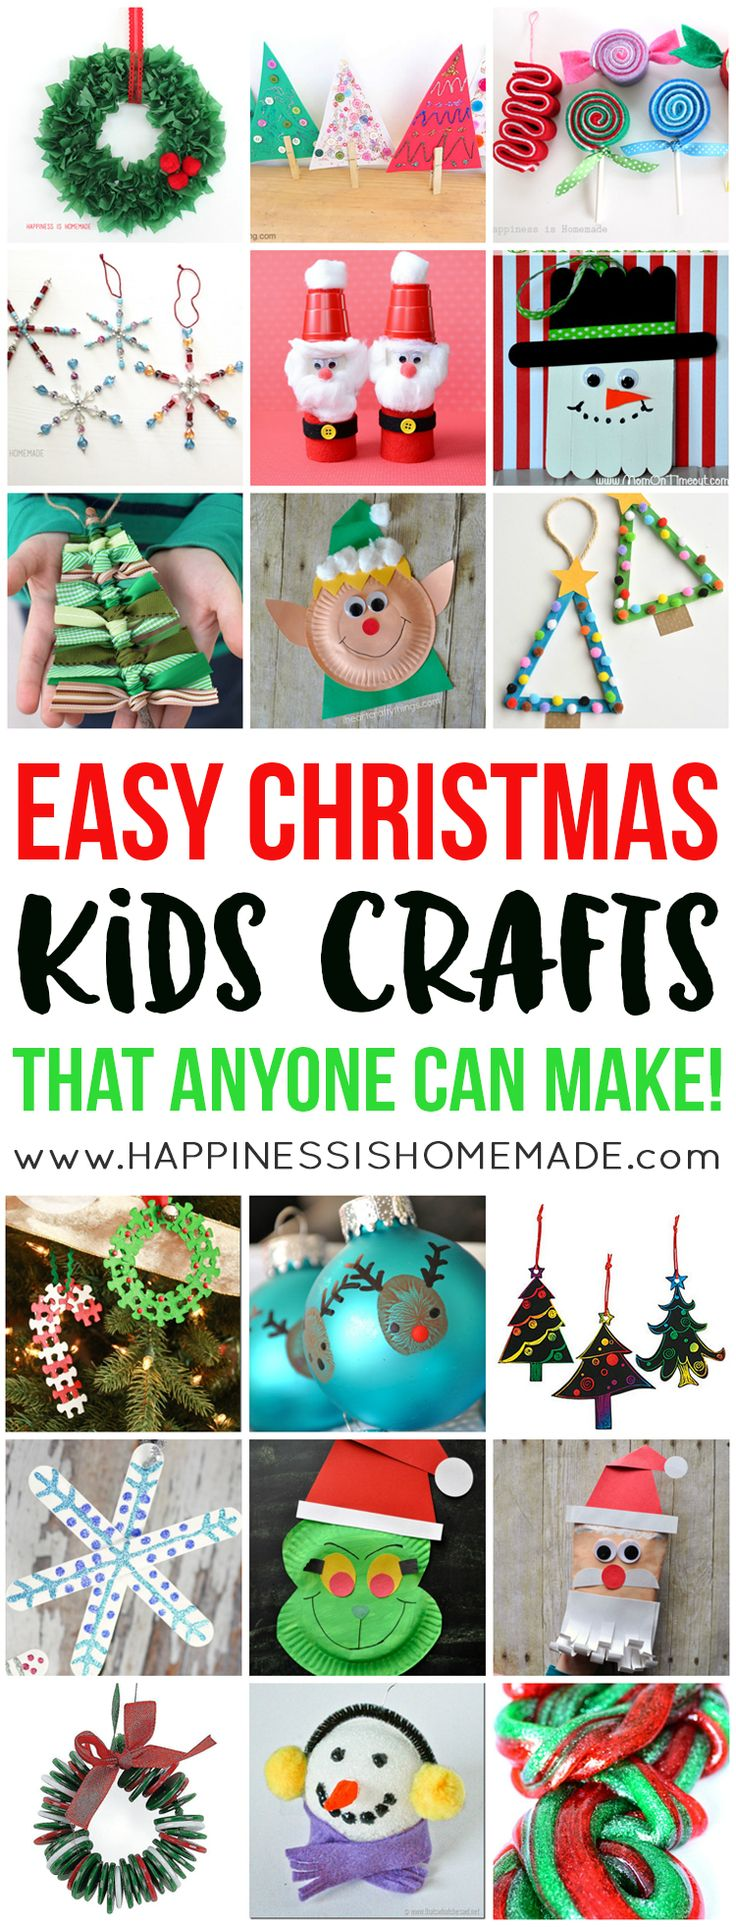 easy-christmas-kids-crafts-that-anyone-can-make